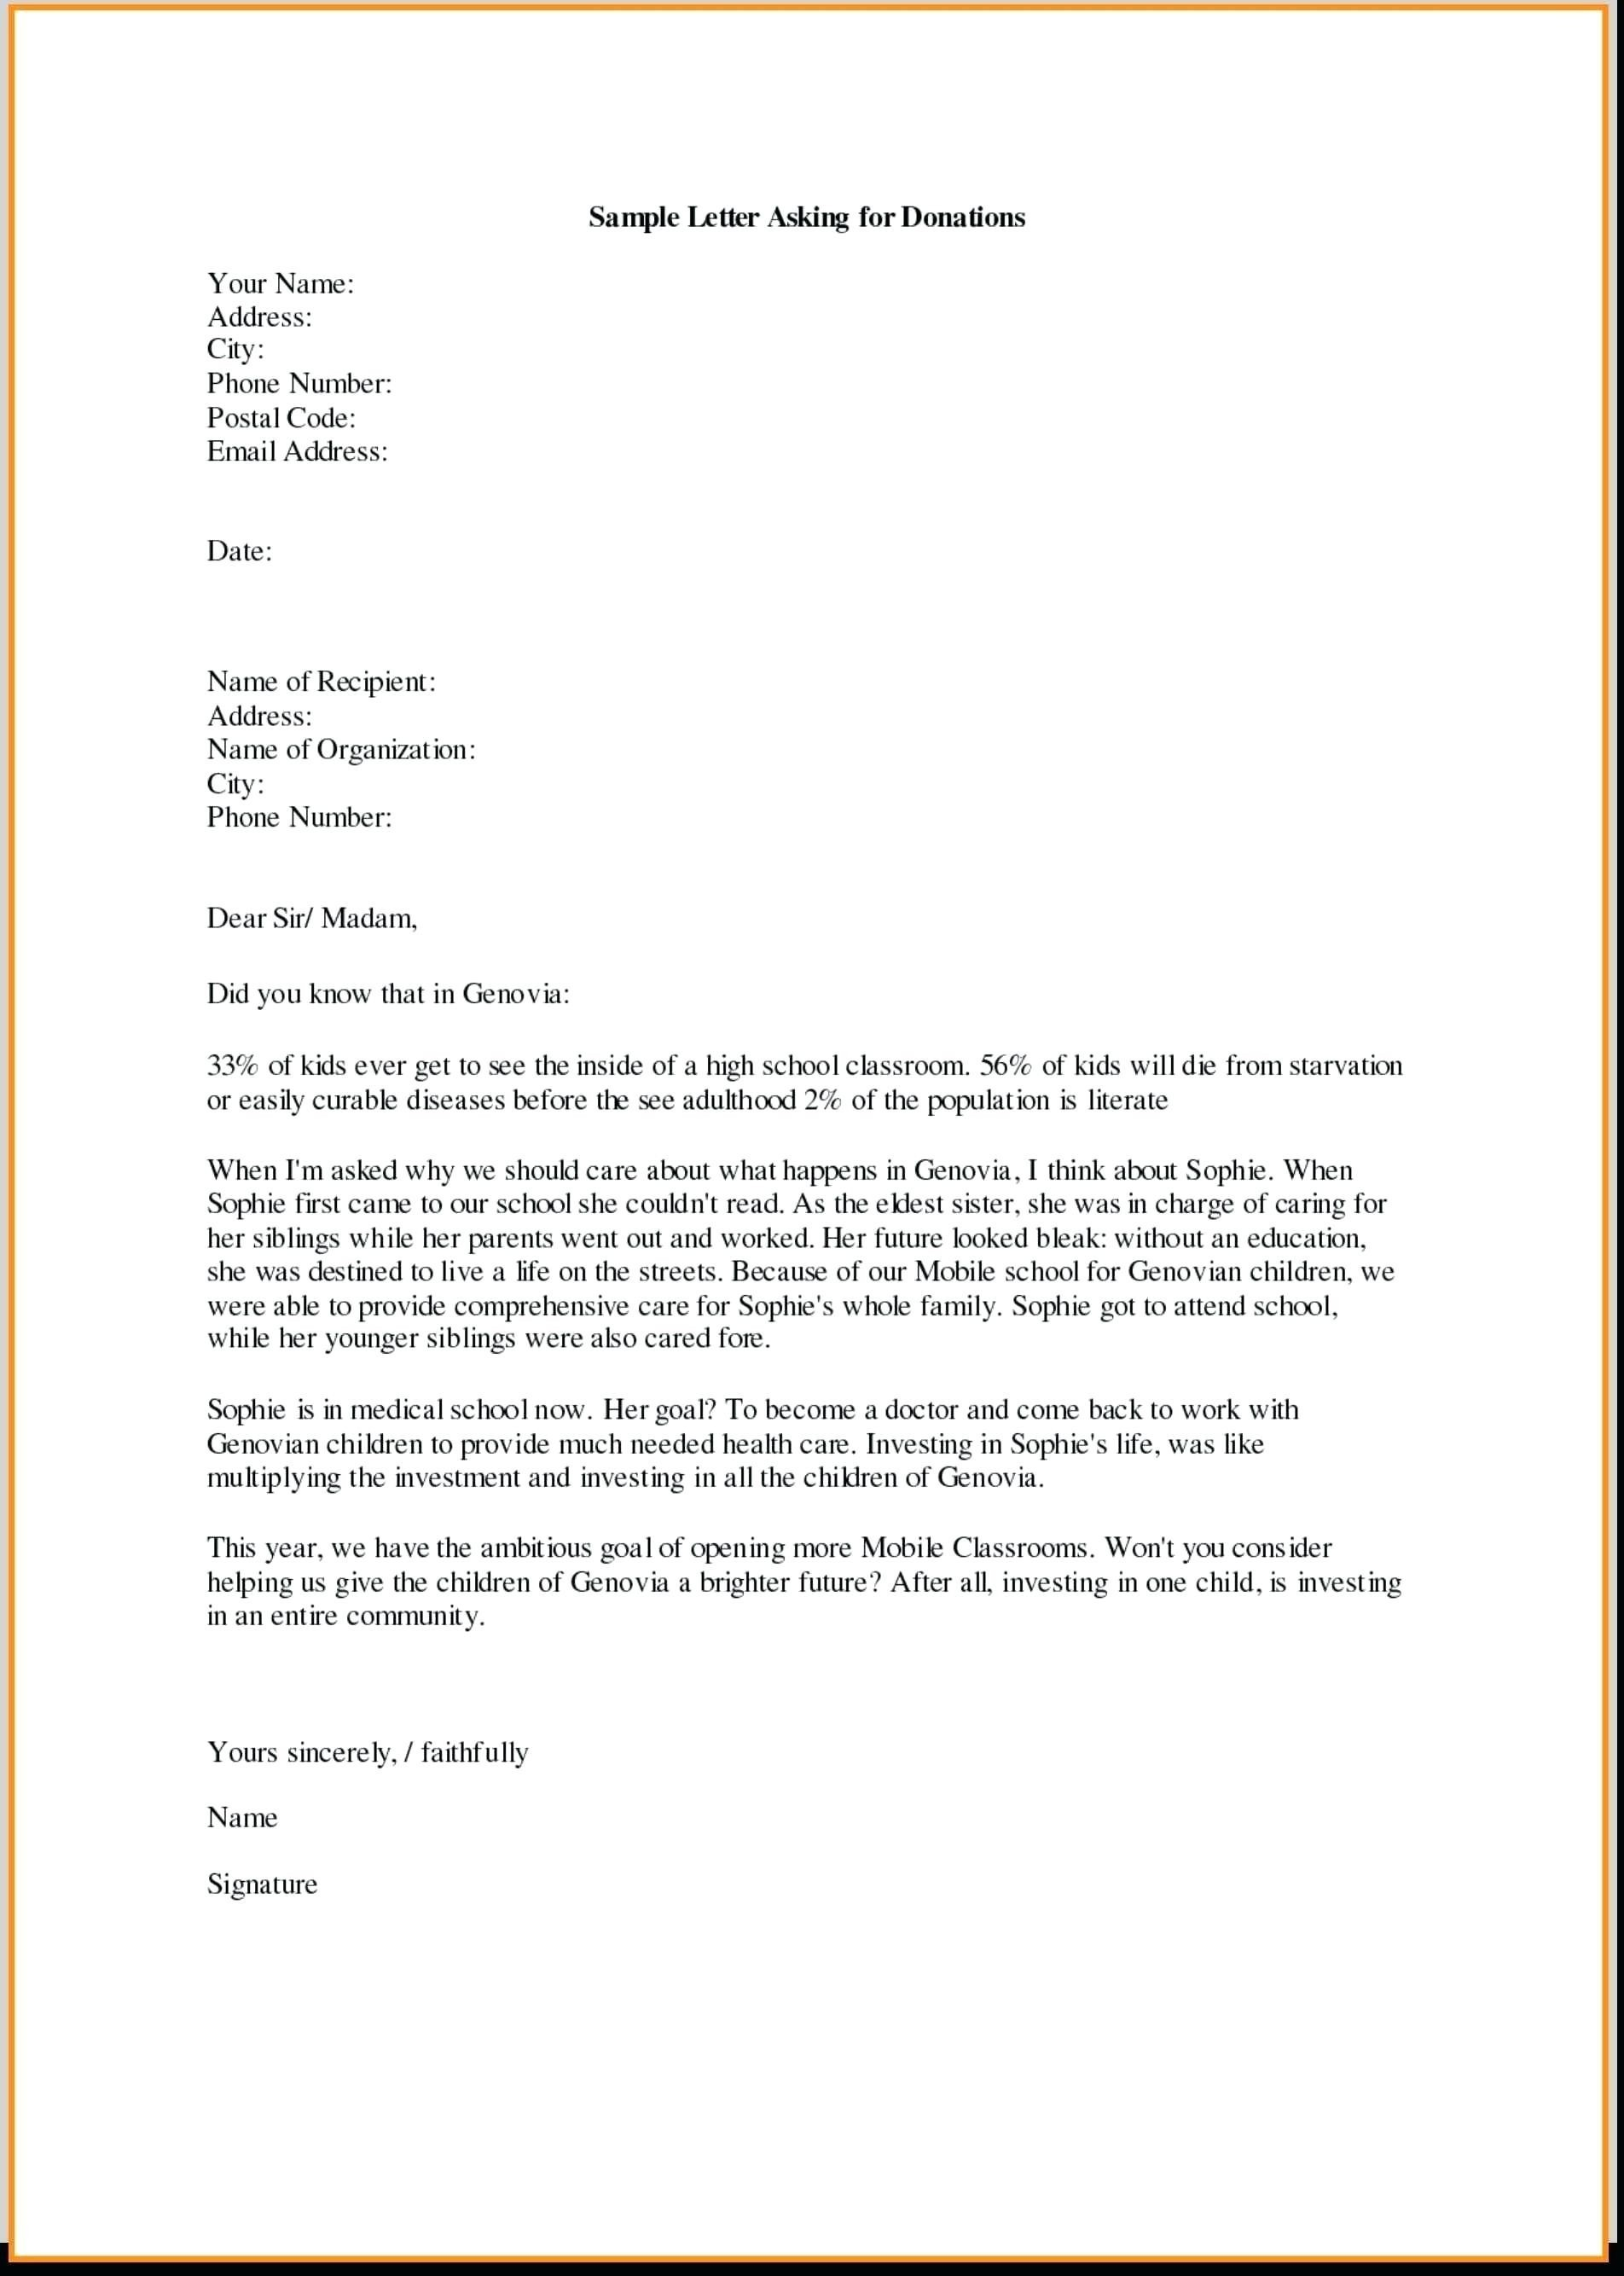 Template Letter Requesting Donations for Fundraiser - Samples Letters Request Donation Best Samples Letters Request